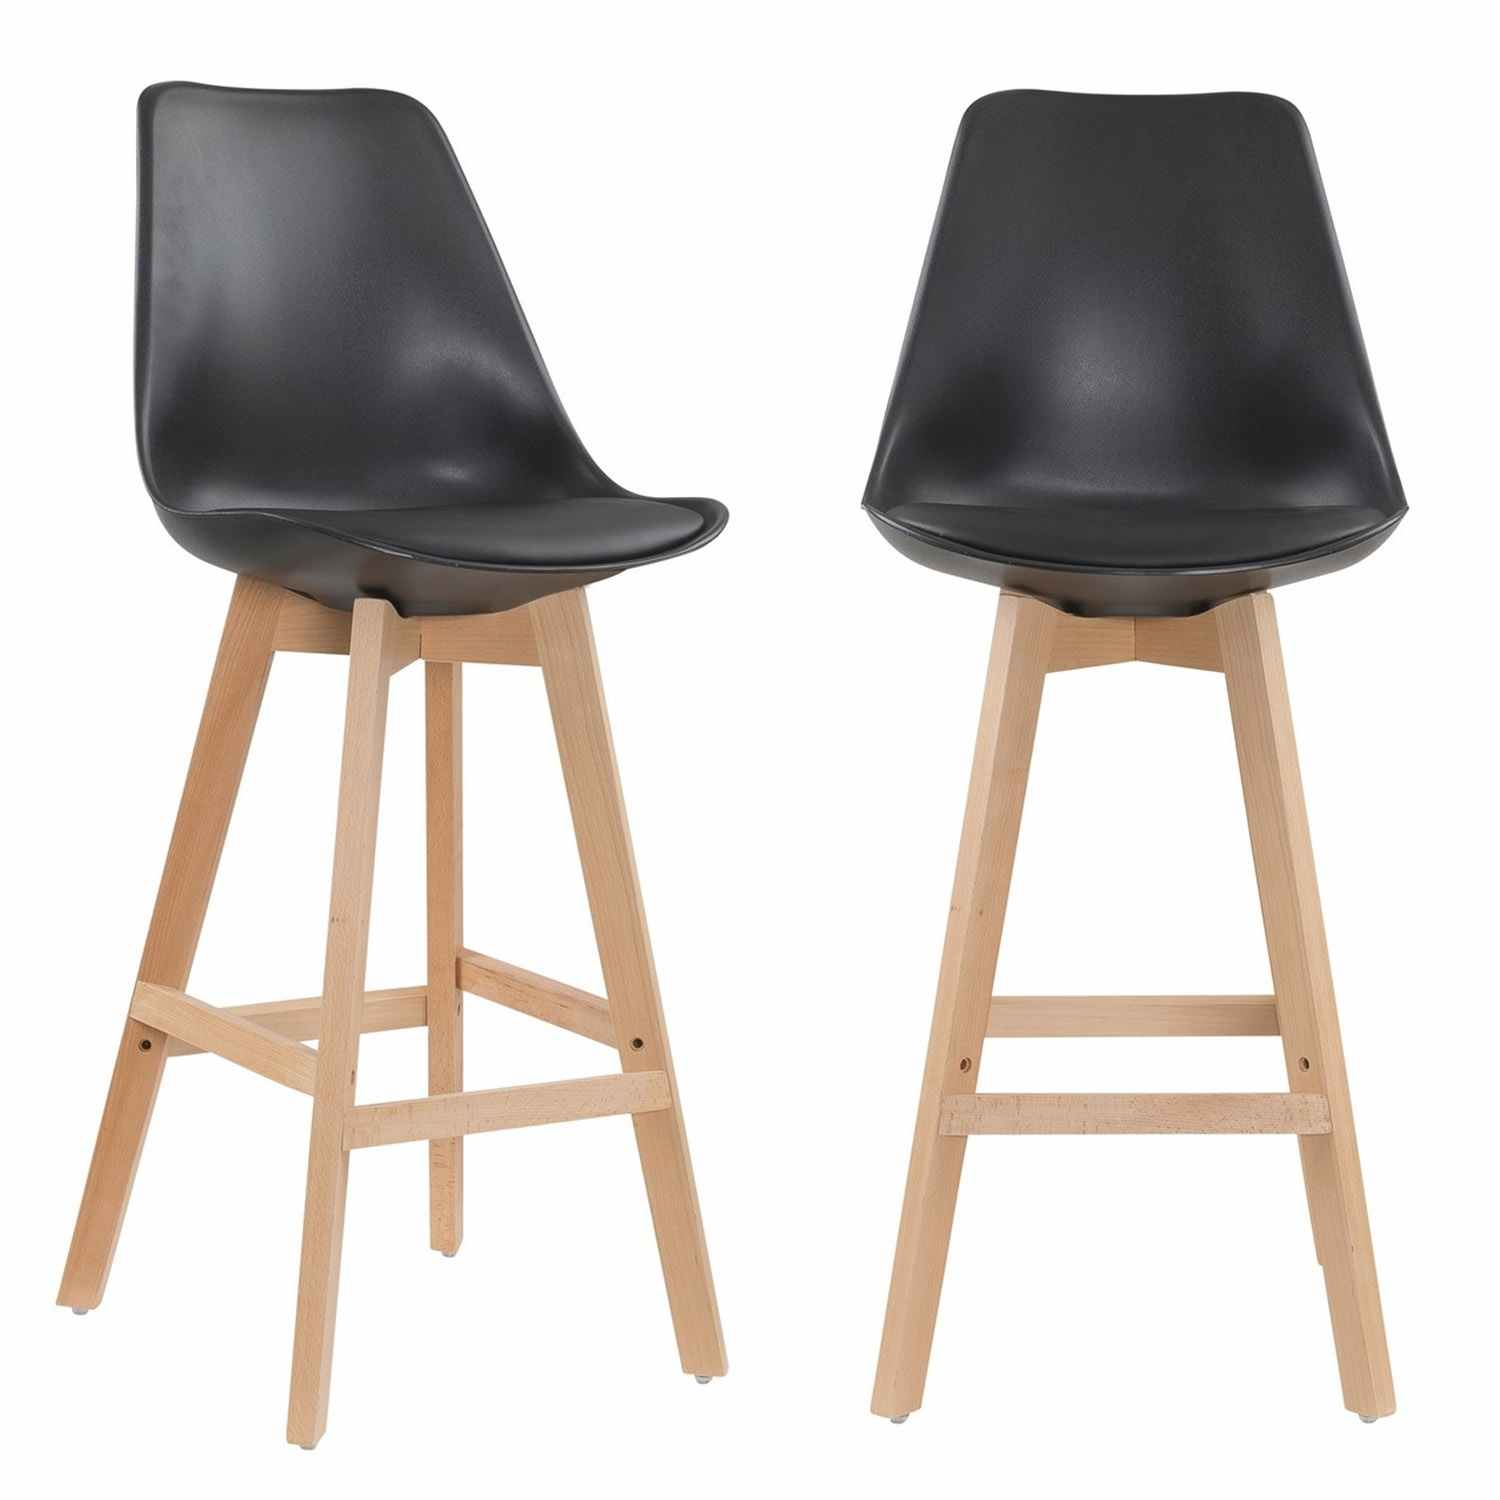 deco in paris 7 lot de 2 tabourets de bar scandinave. Black Bedroom Furniture Sets. Home Design Ideas